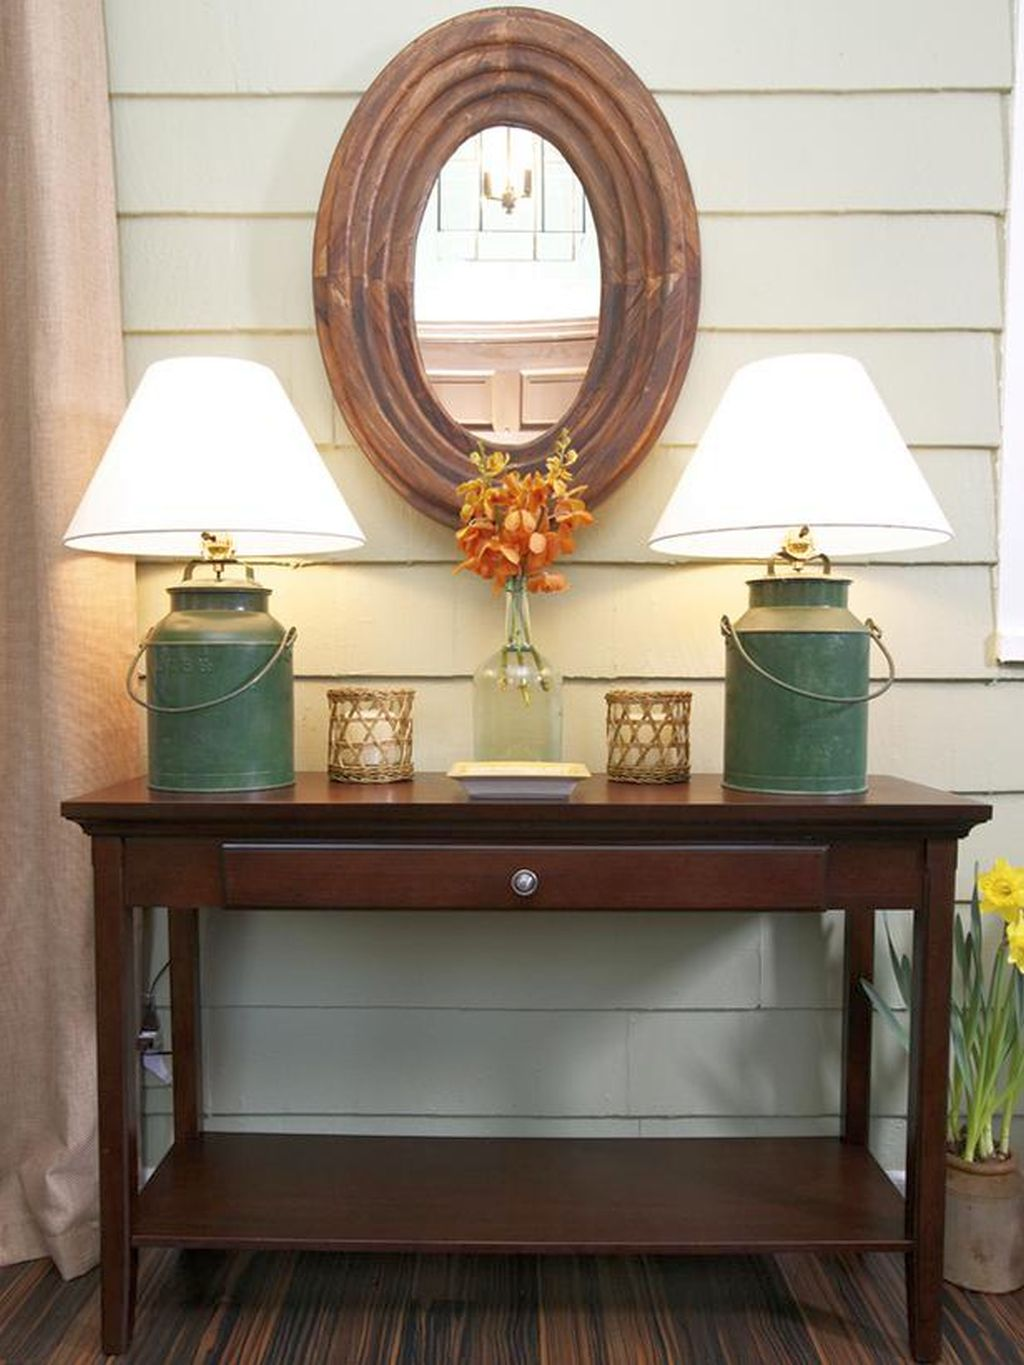 Rustic Foyer Mirror : Rustic style small entry table ideas with oval mirror